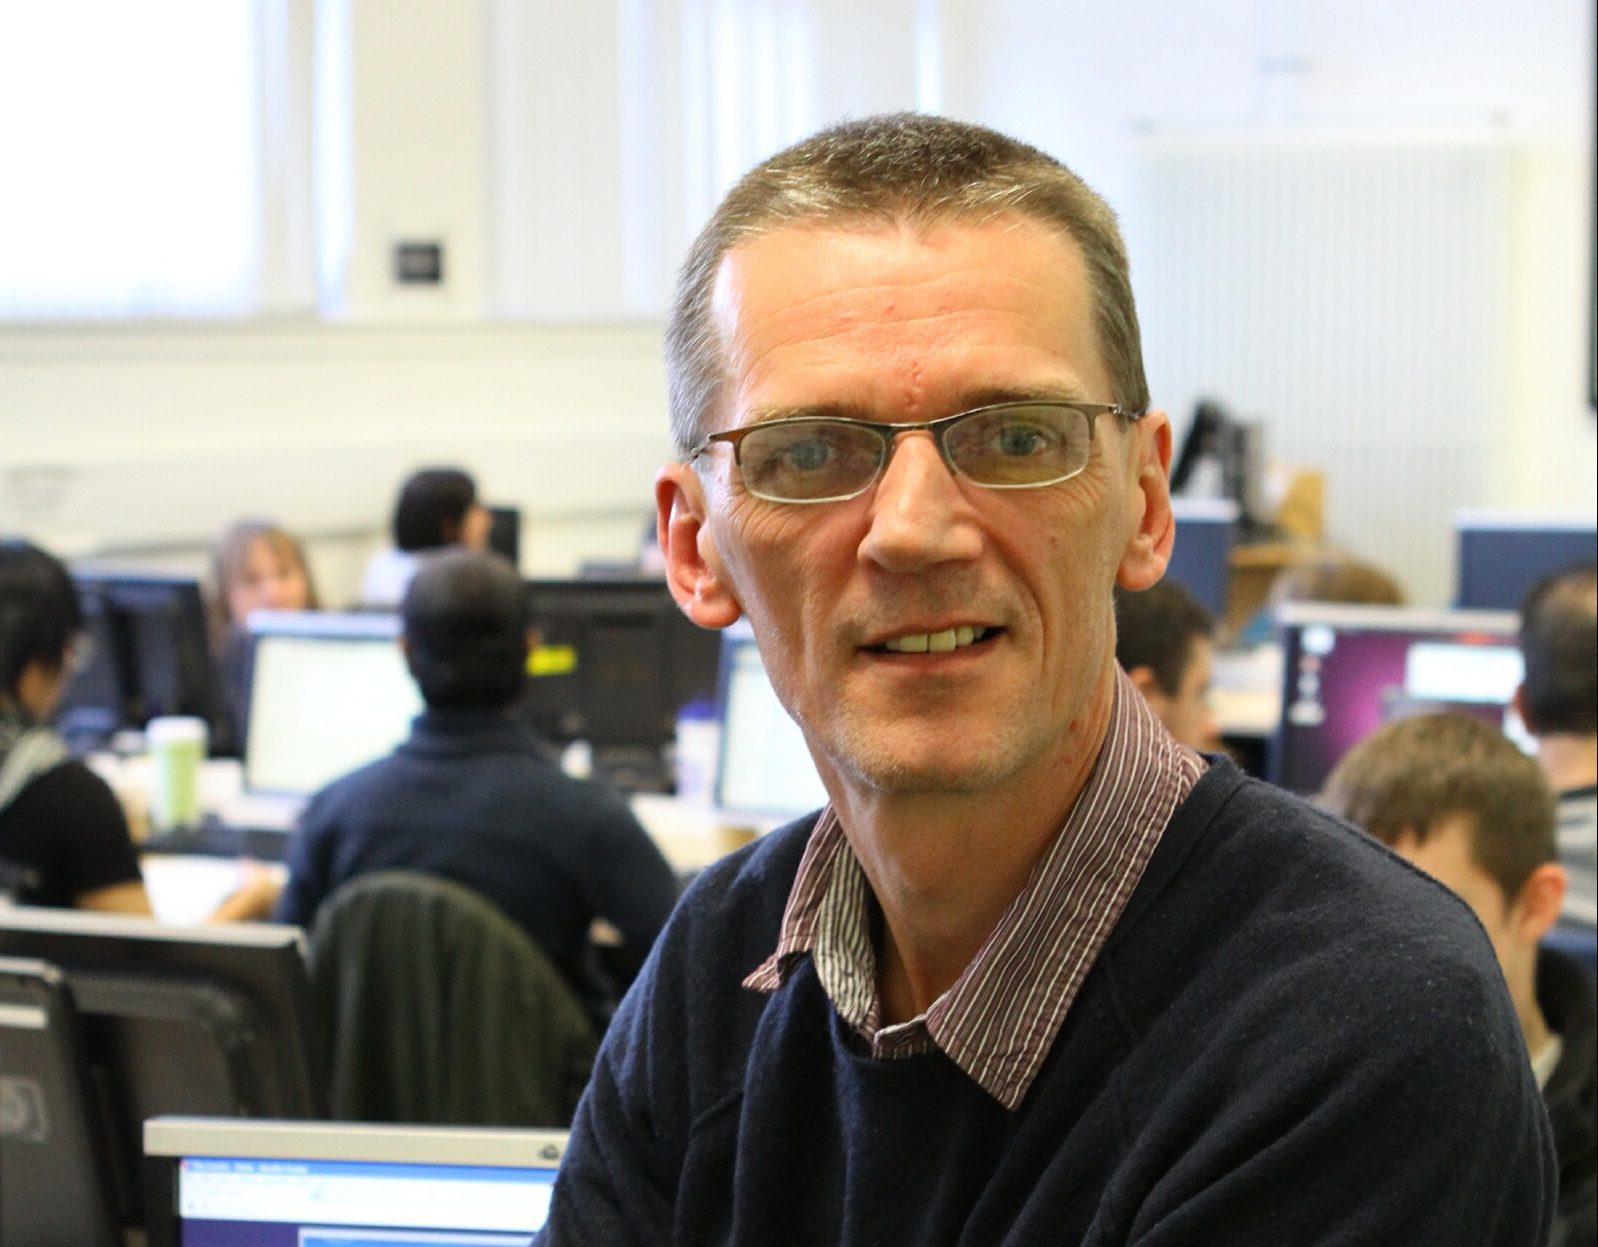 Colin McLean, lecturer in Ethical Hacking at Abertay University